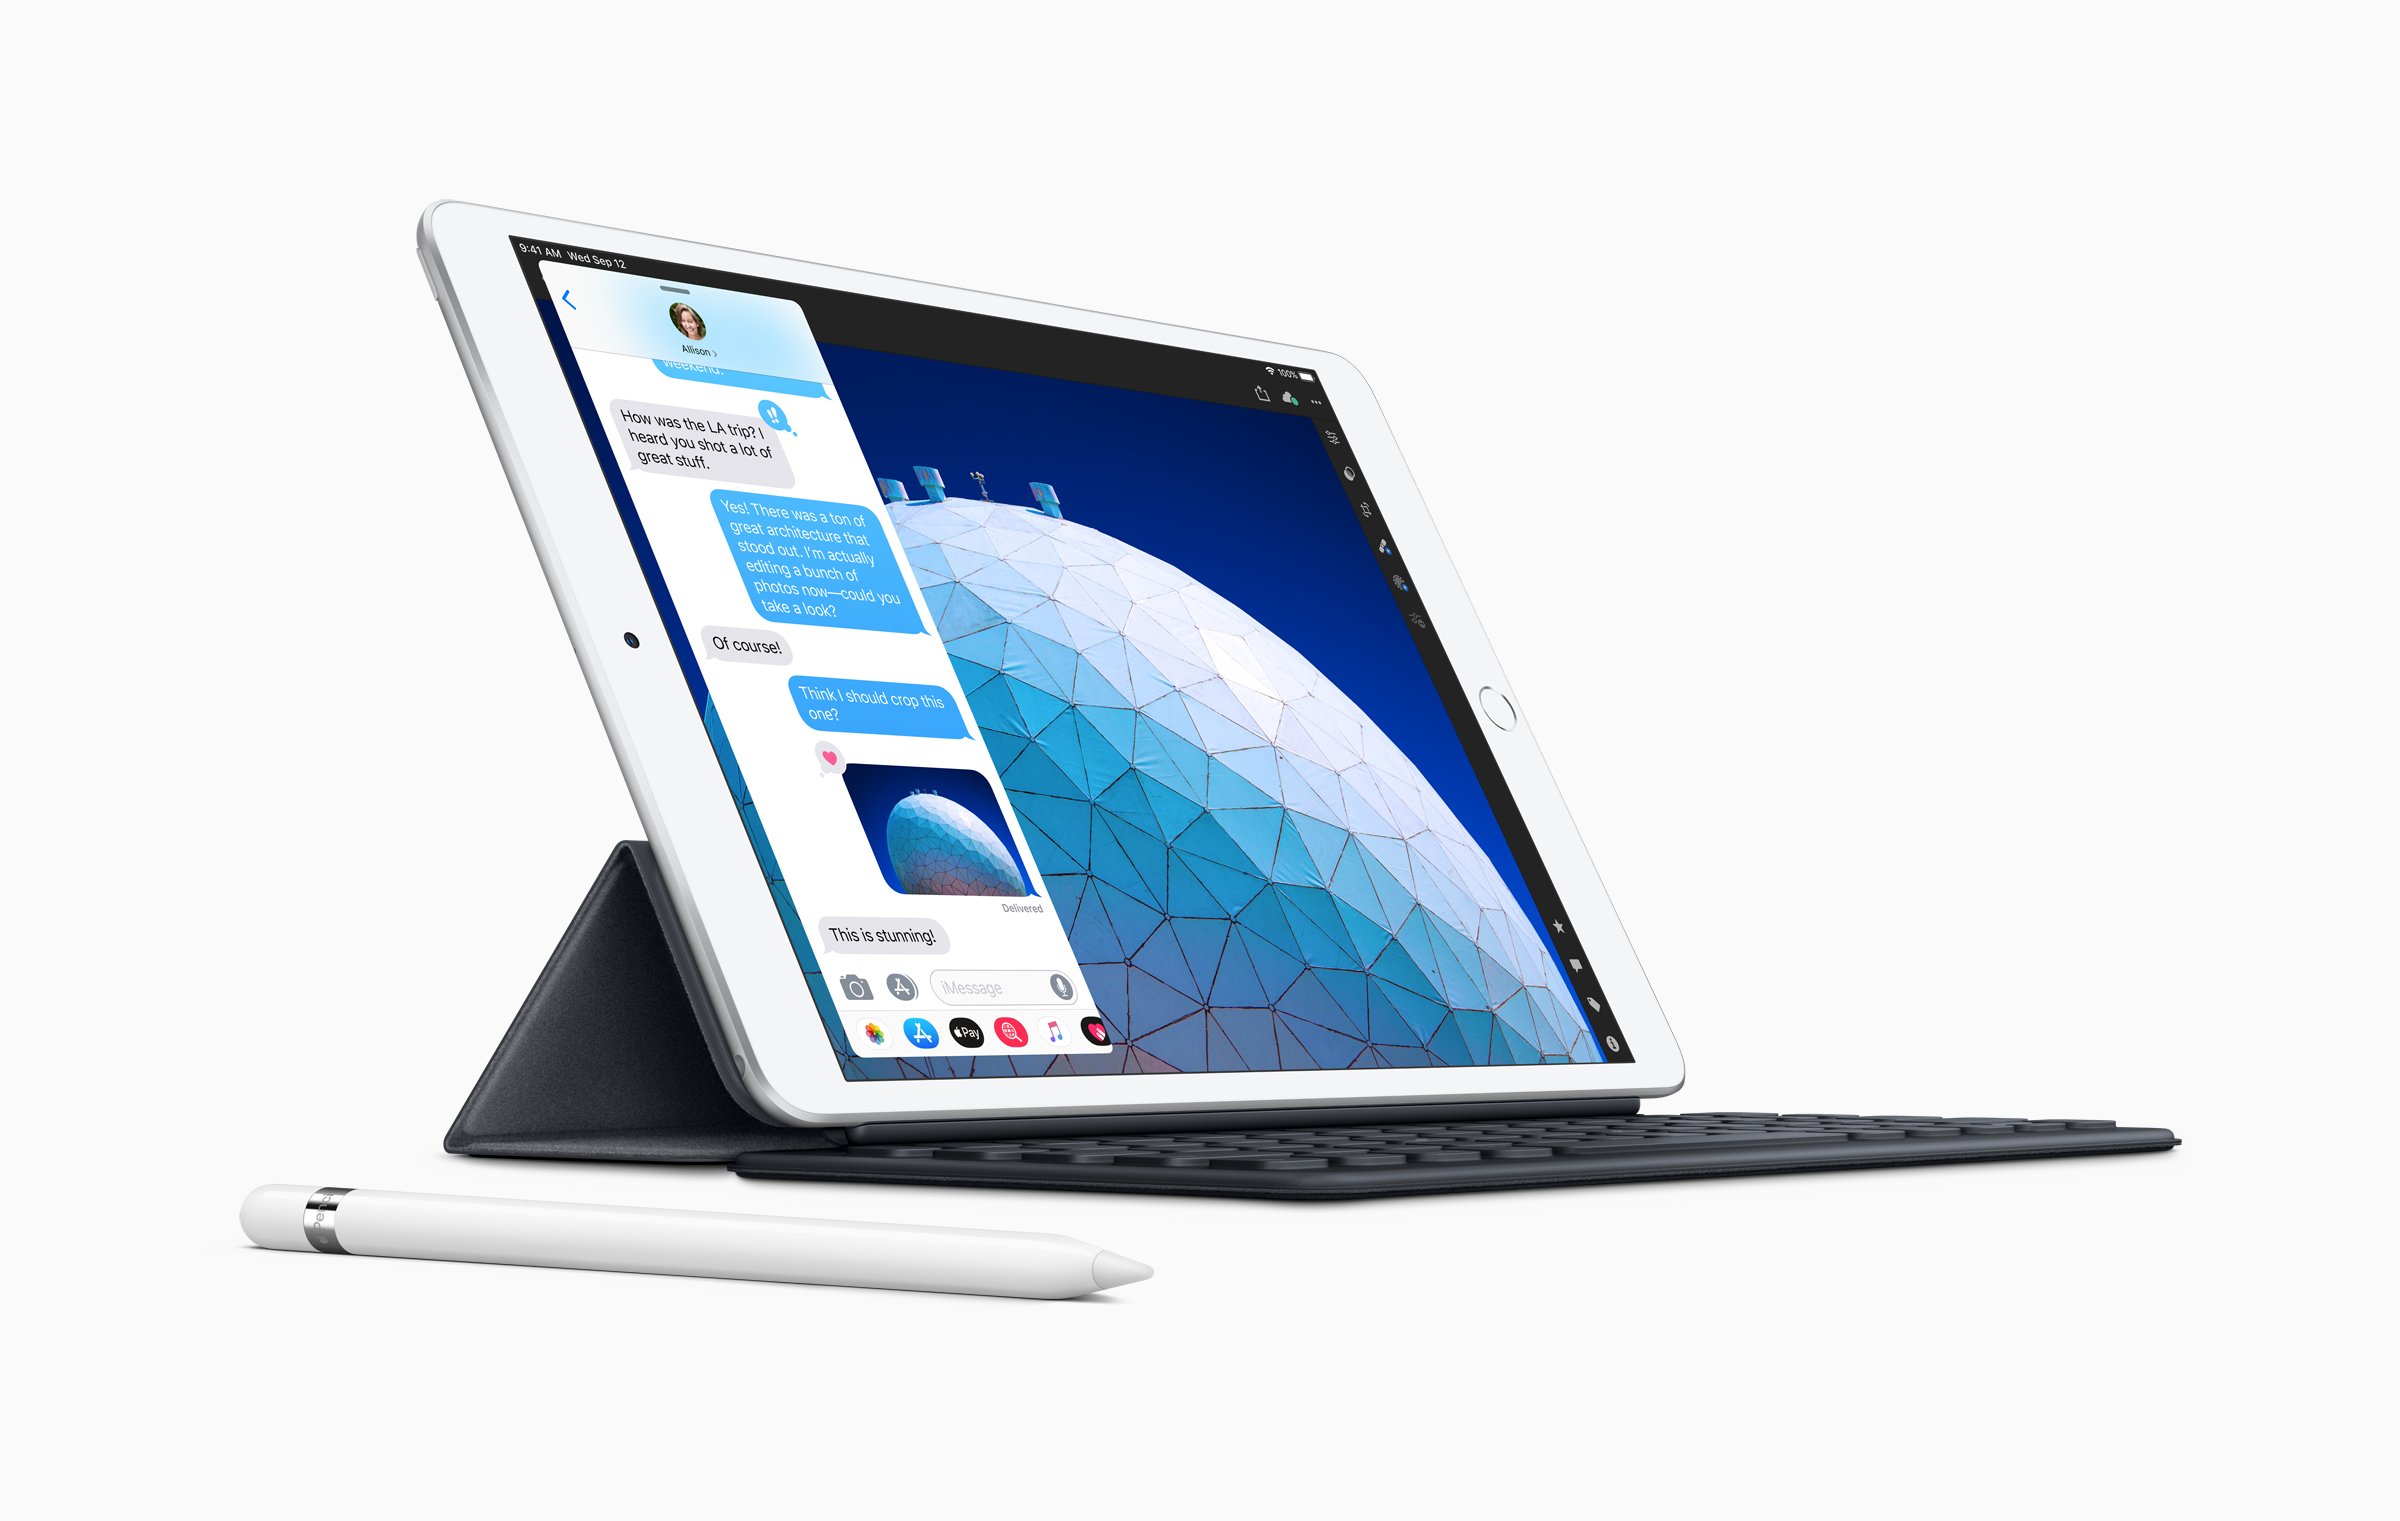 New IPad Air Smart Keyboard With Apple Pencil 03192019